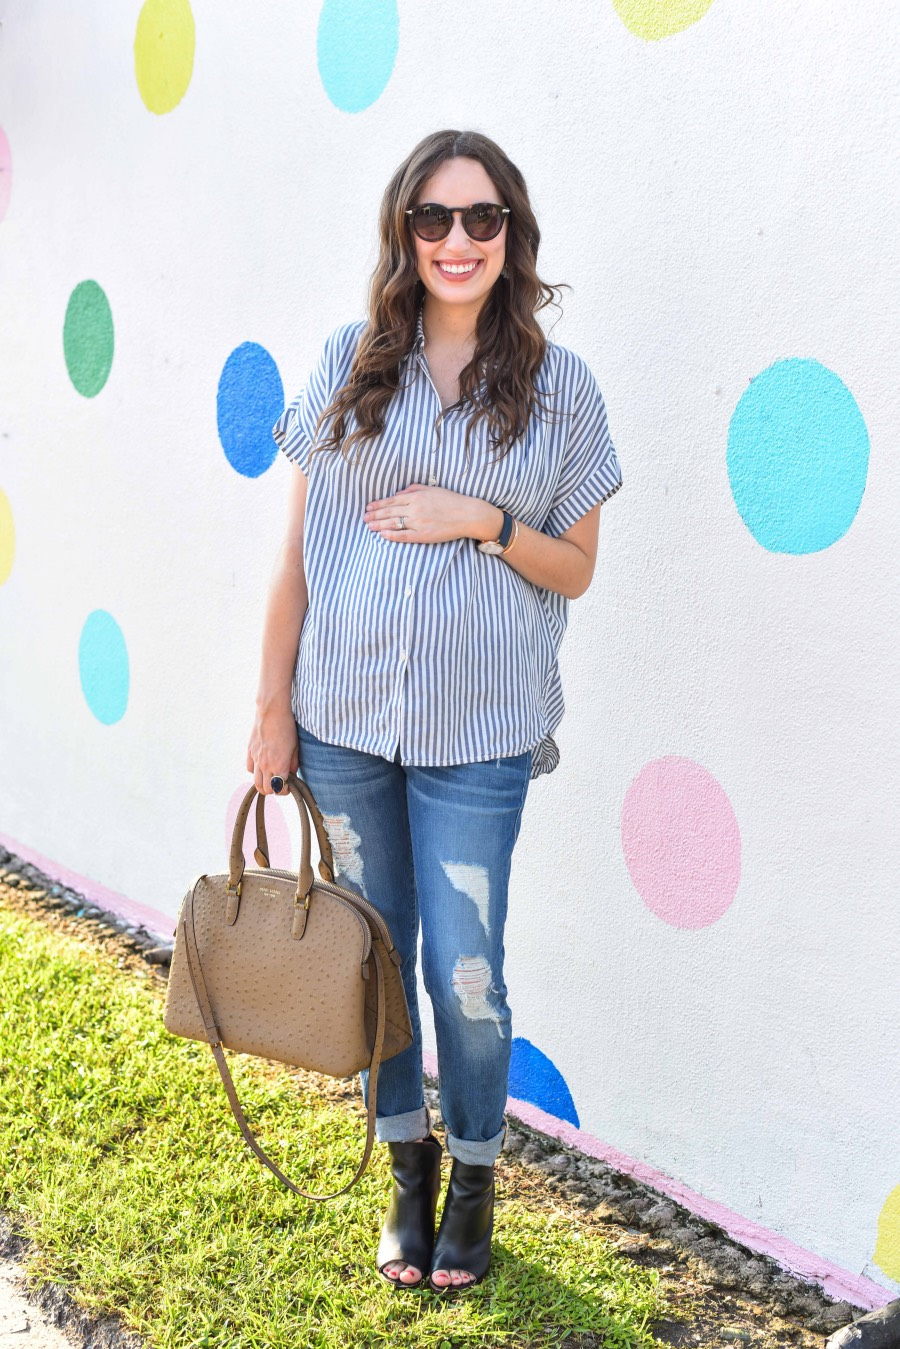 Alice of Lone Star Looking Glass shares tips on how to wear your regular jeans when you're pregnant in her True Religion jeans and a Madewell striped top.